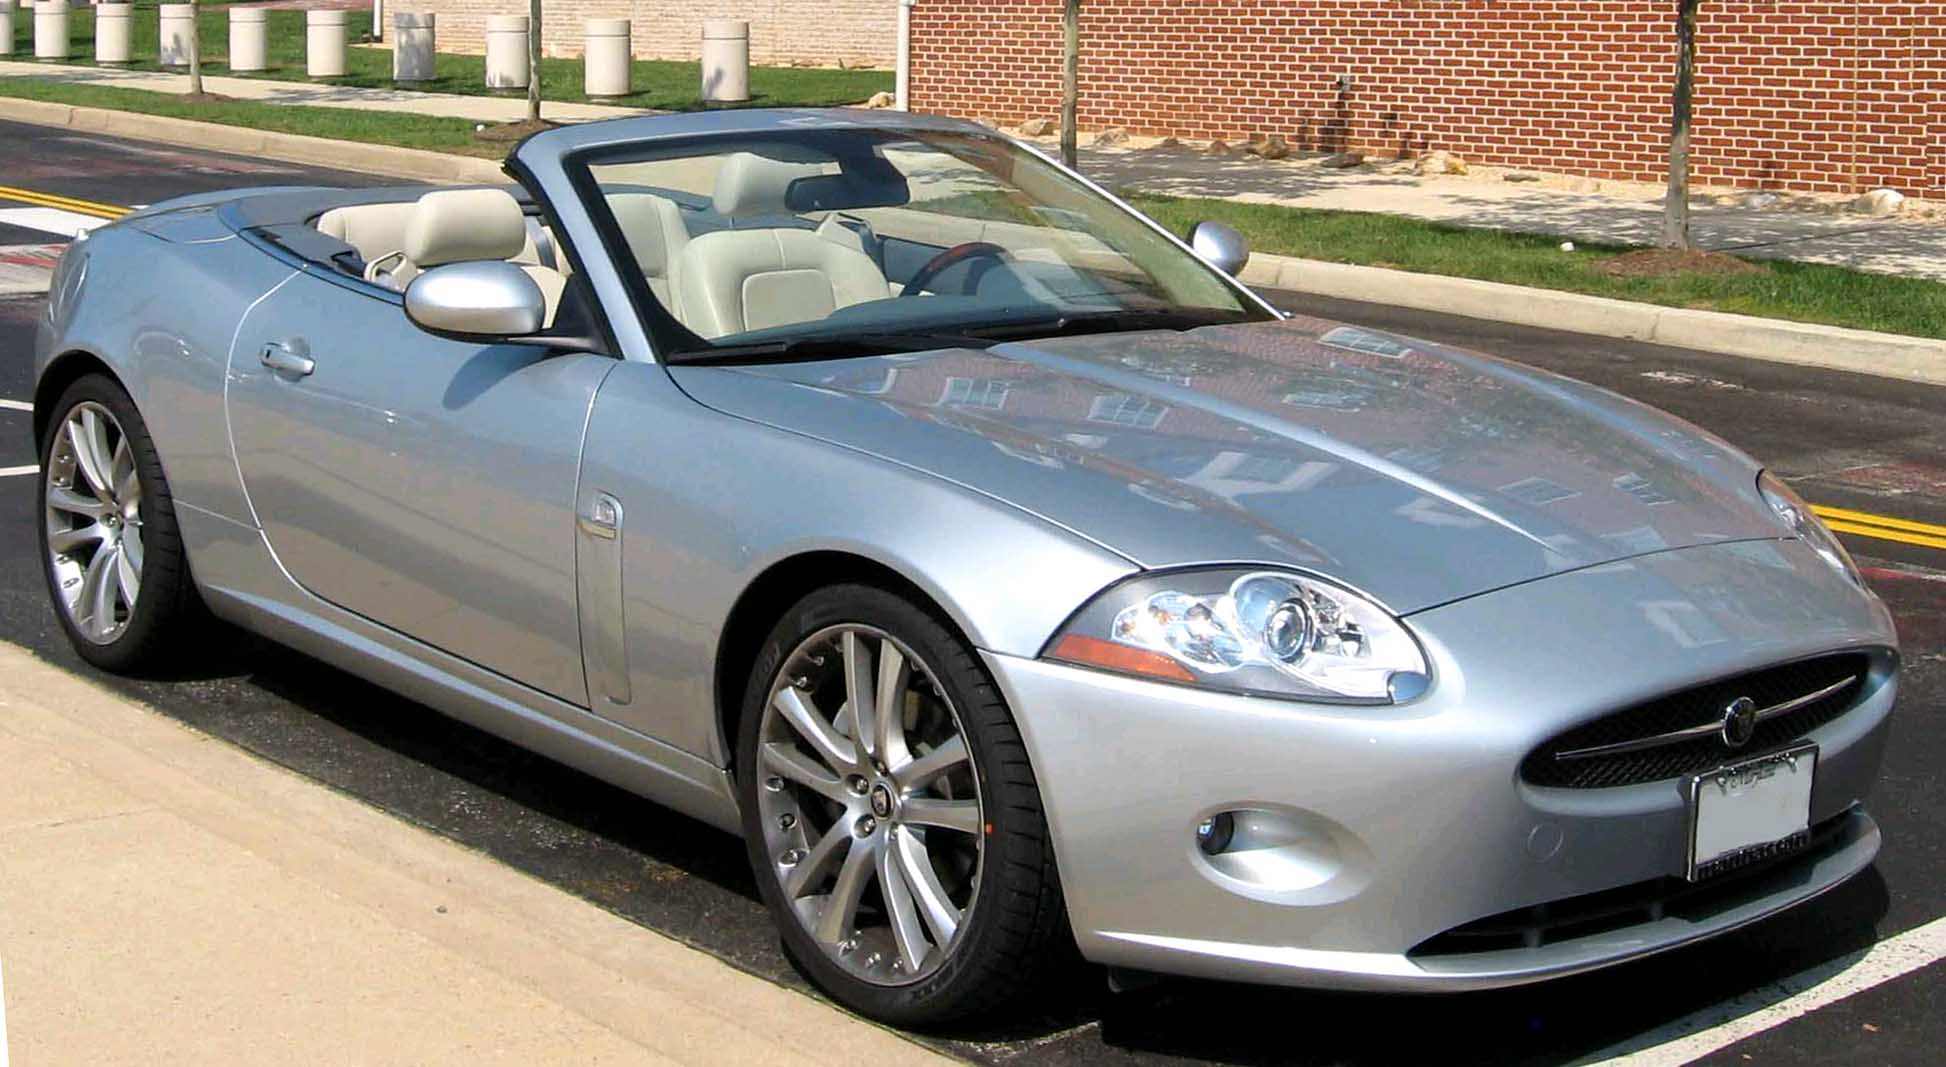 Rent a Jaguar luxury convertible or similar model for $150 a day (Photo via Google)